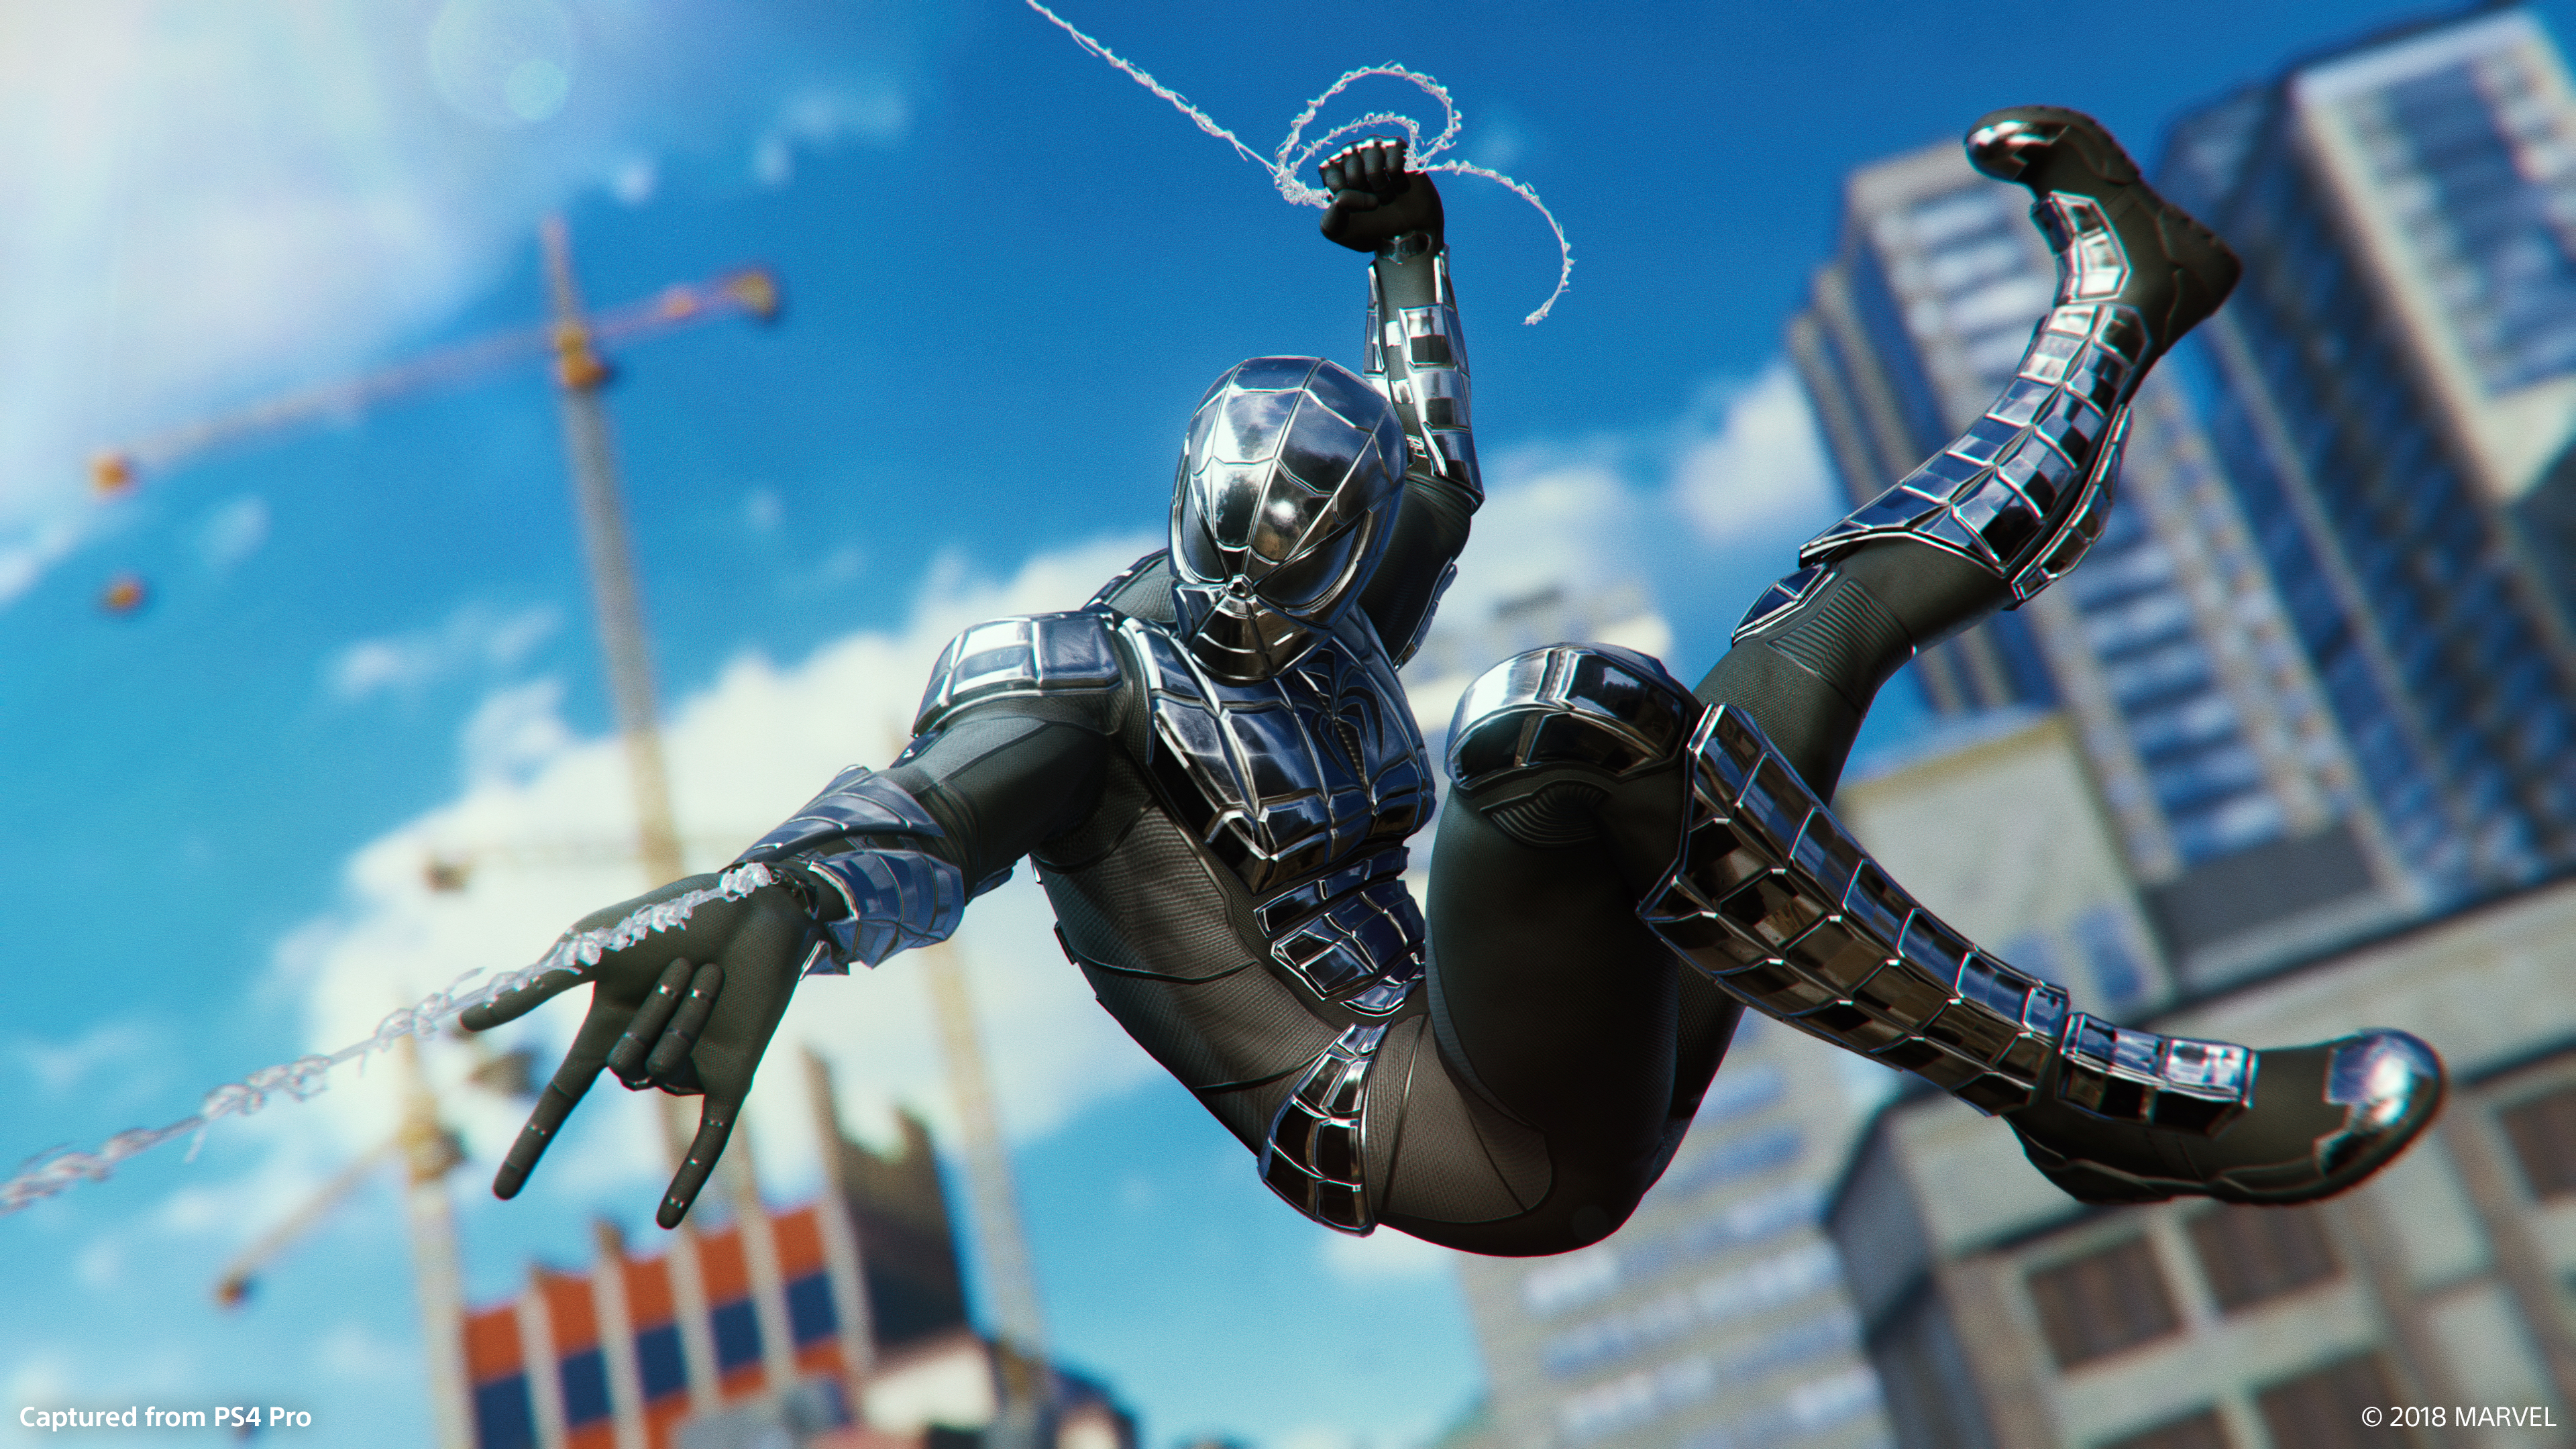 Marvel's Spider-Man on PS4